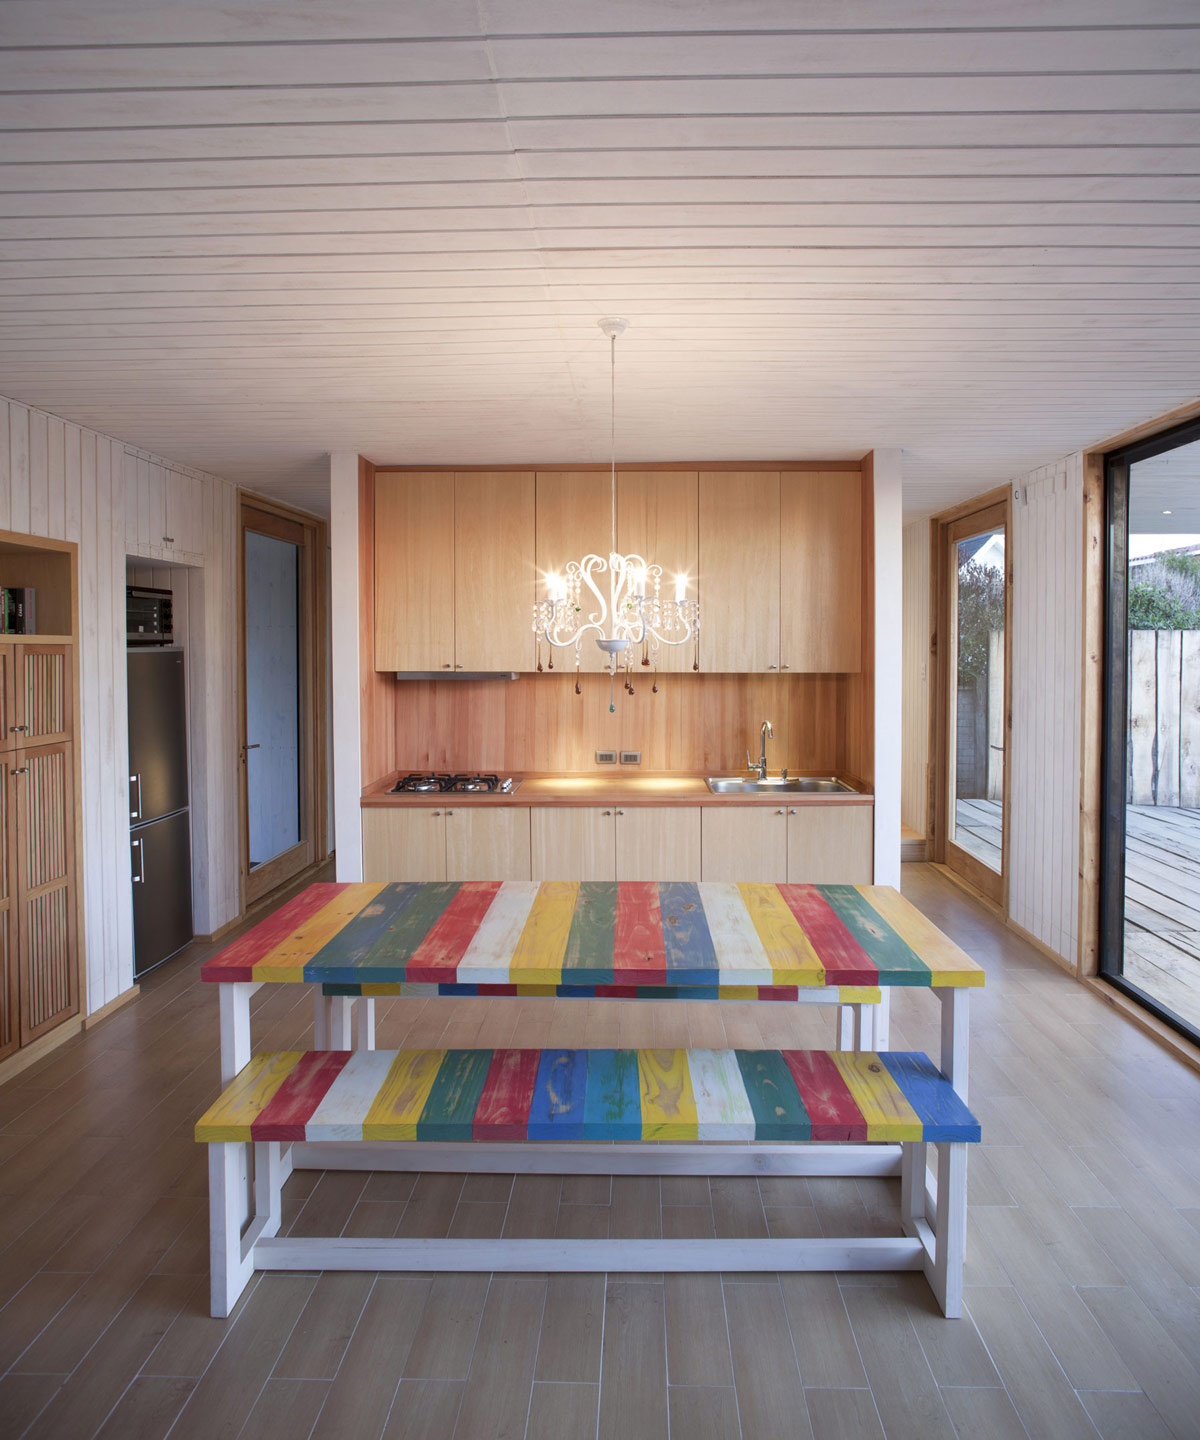 Colorful Dining Table, Compact Kitchen, Family Home in Algarrobo, Chile